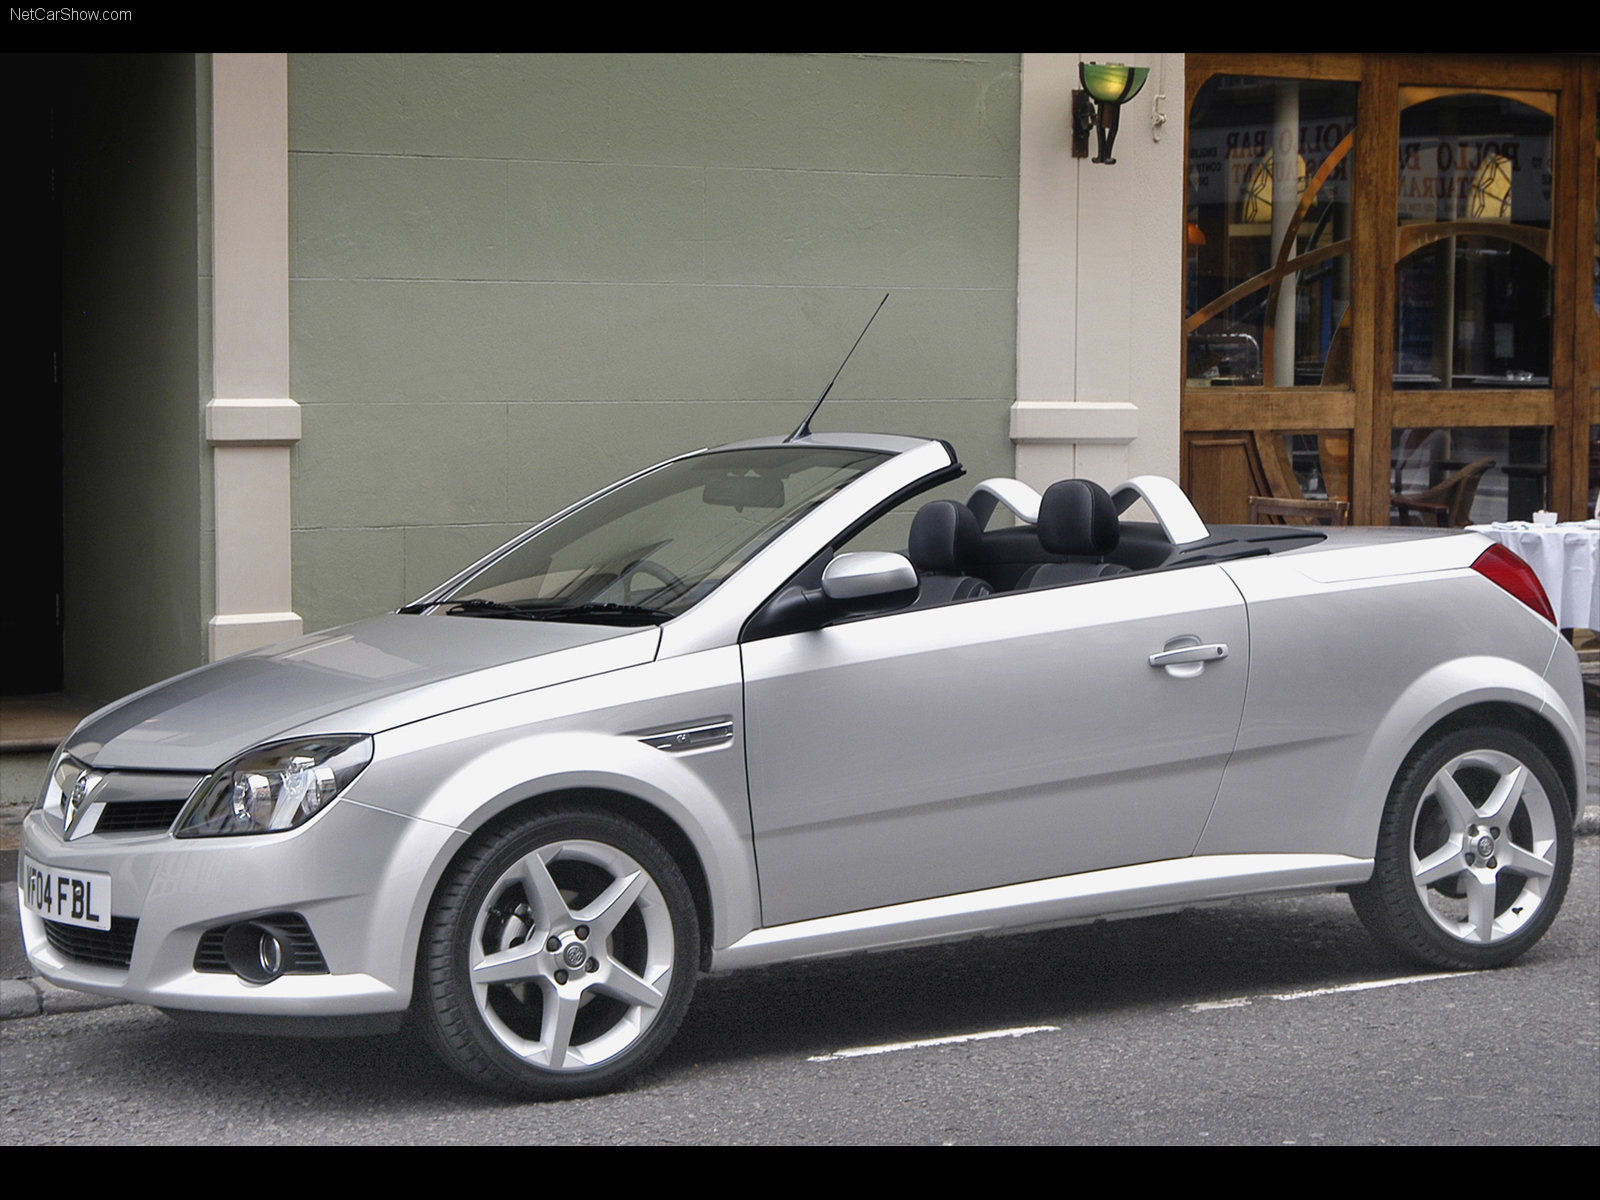 vauxhall tigra photos photogallery with 11 pics. Black Bedroom Furniture Sets. Home Design Ideas